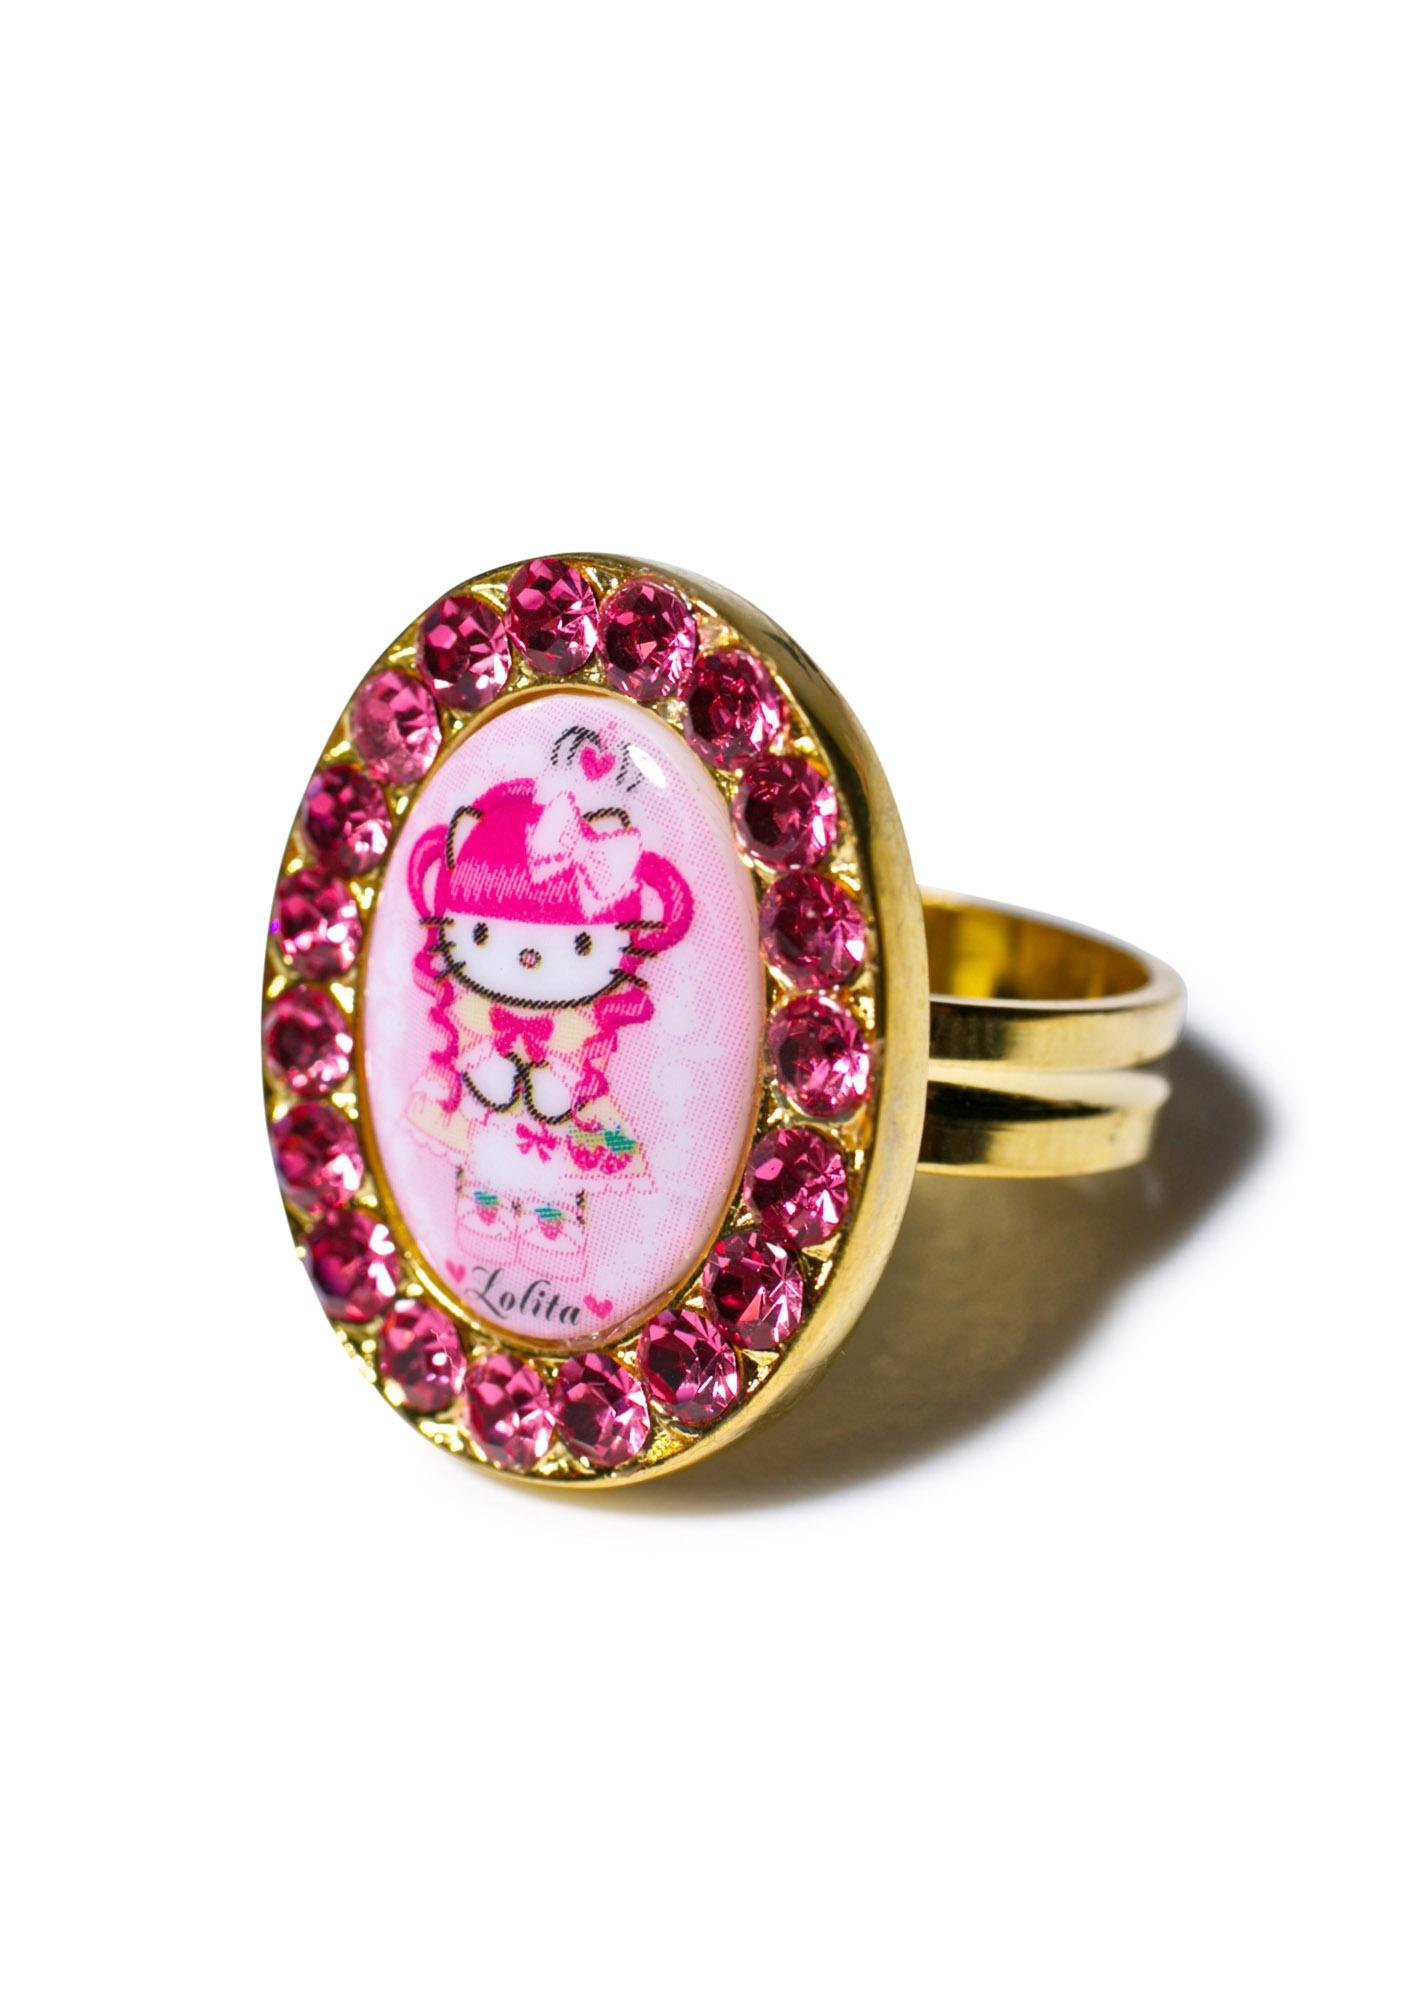 Tarina Tarantino Crystal Framed Gothic Lolita Head Ring